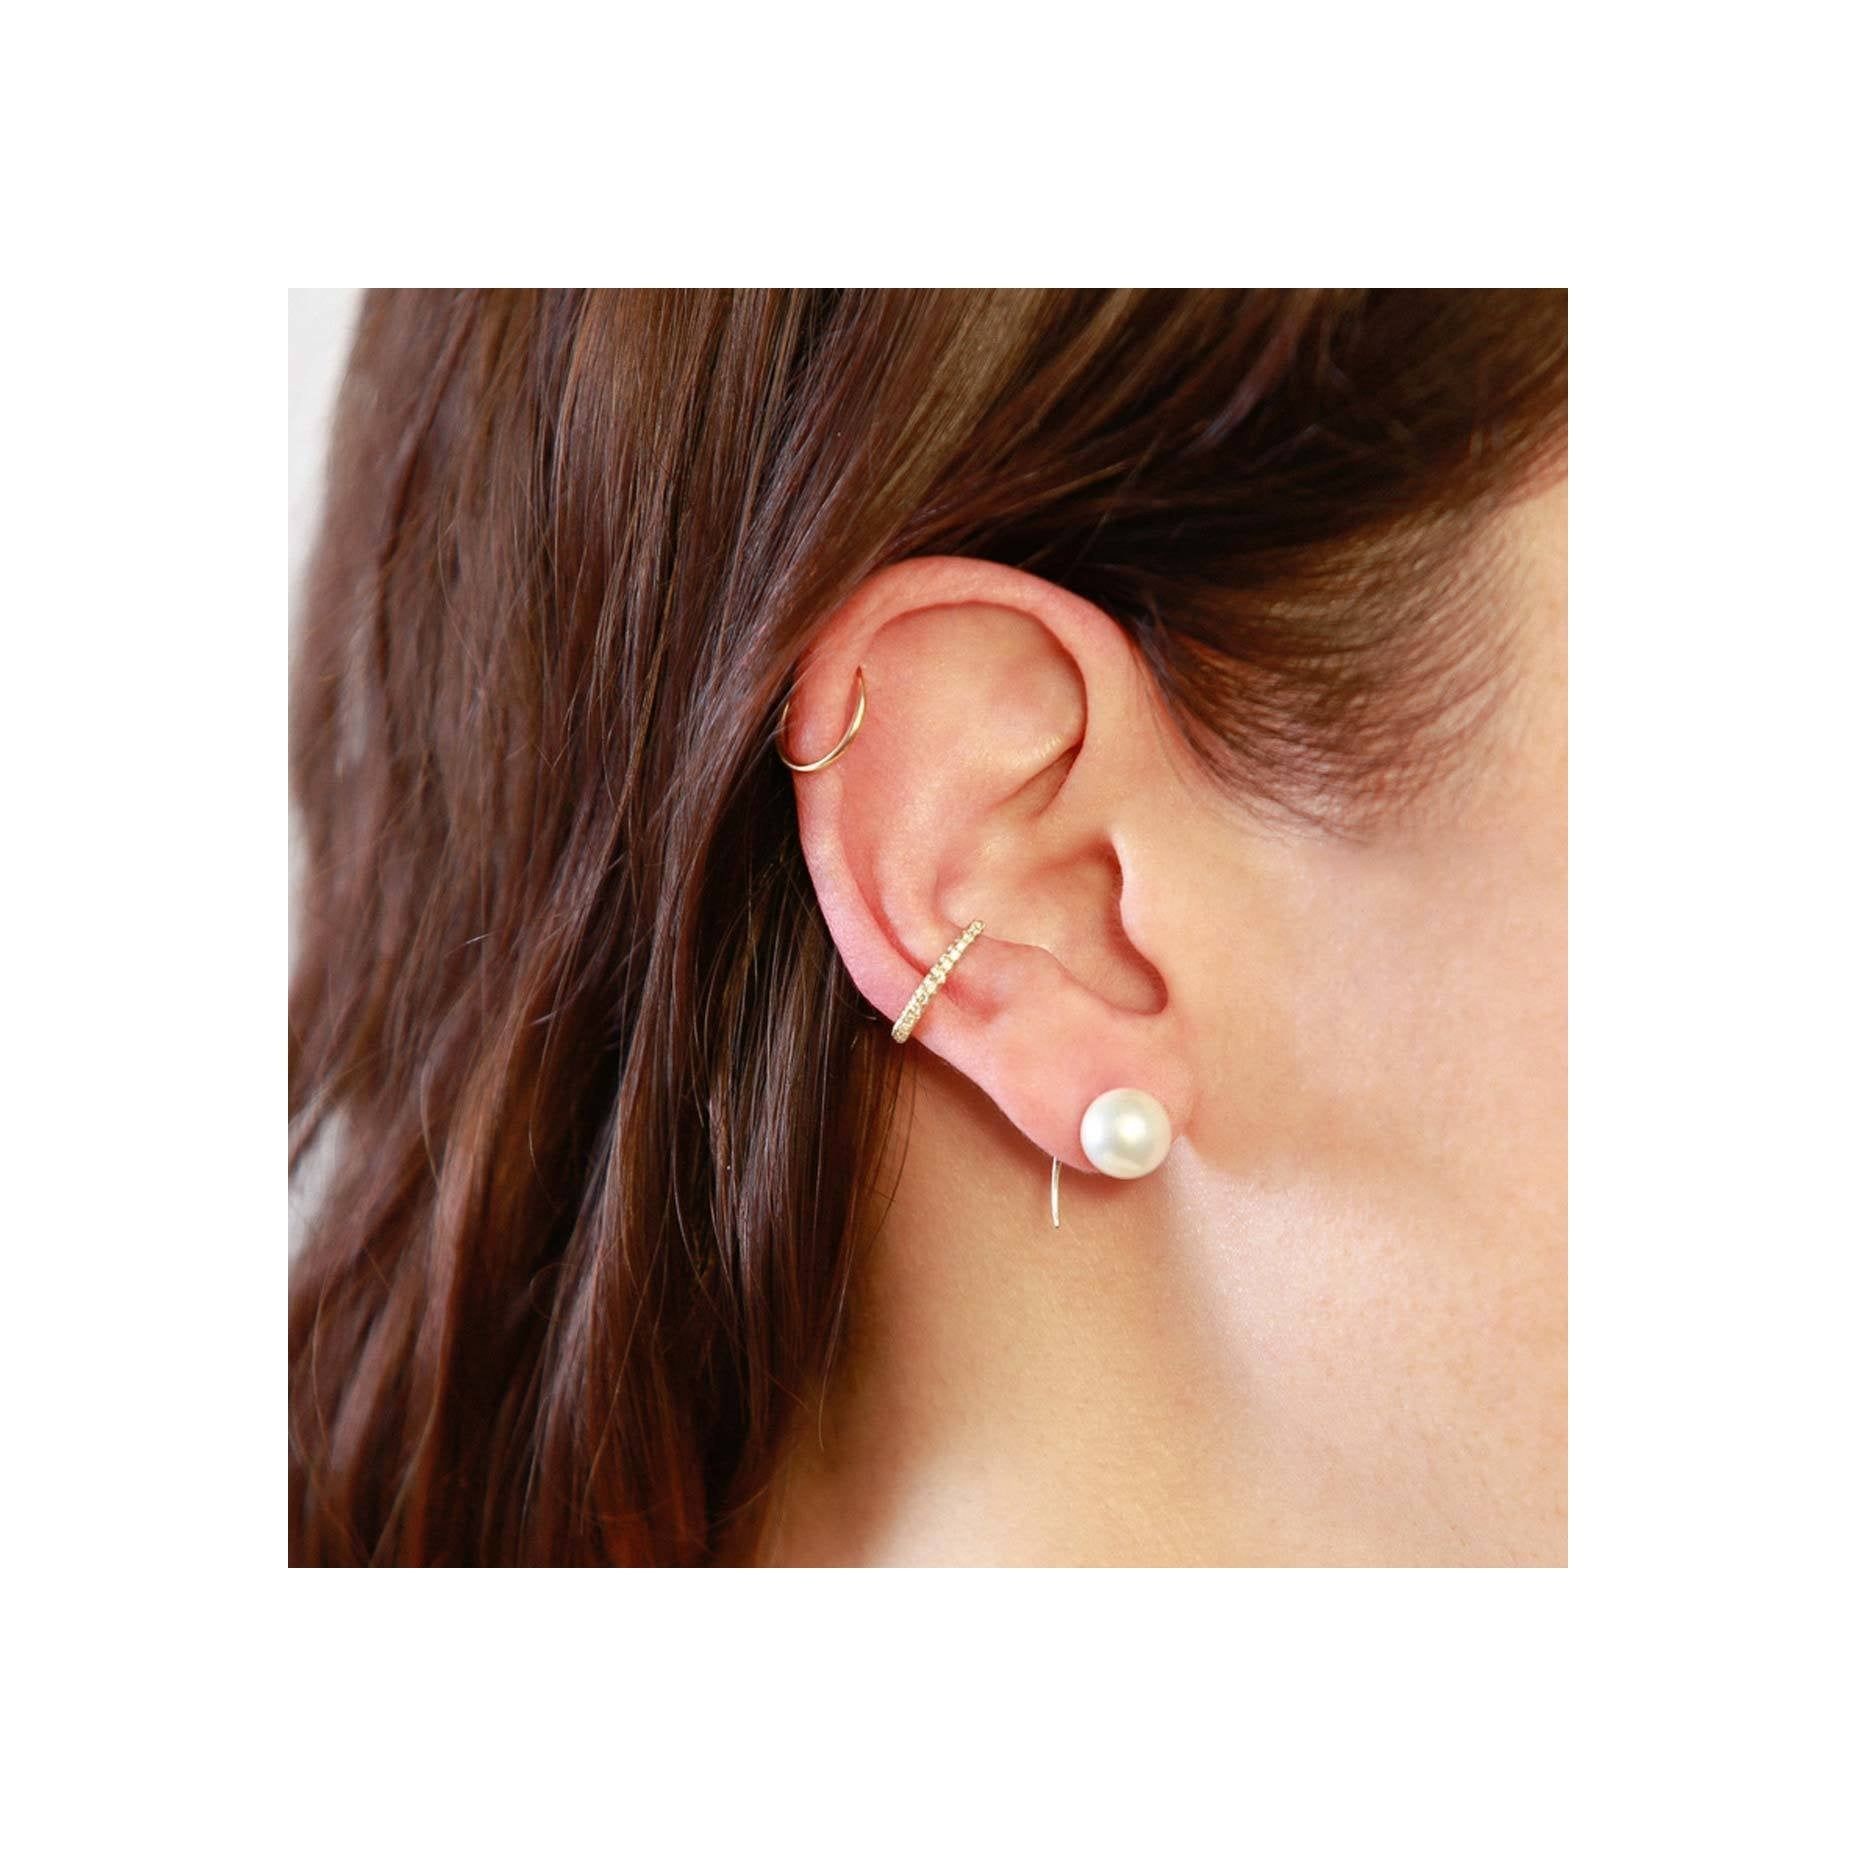 Reloaded Ear Cuff With White Pavé Diamonds - Gabriela Artigas